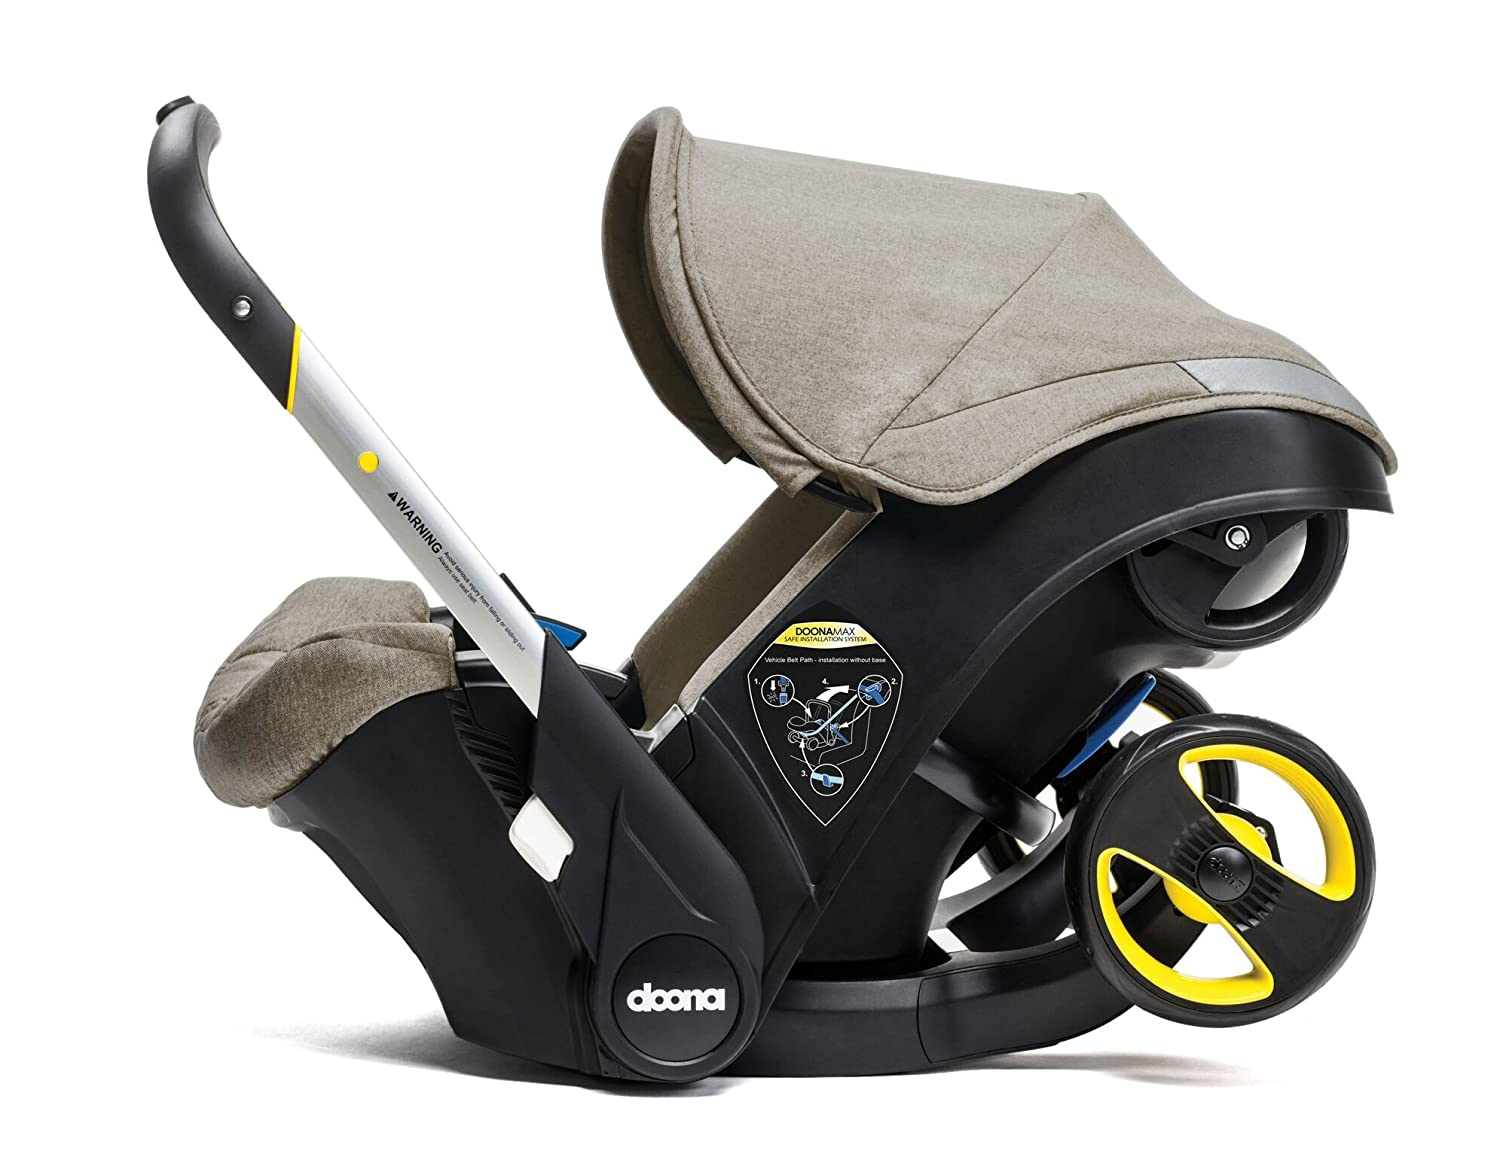 Doona Car Seat Stroller Group 0 1 Dune Revolutionary 2 In 1 Group 0 1 Car Seat That Converts Into A Pram In Seconds